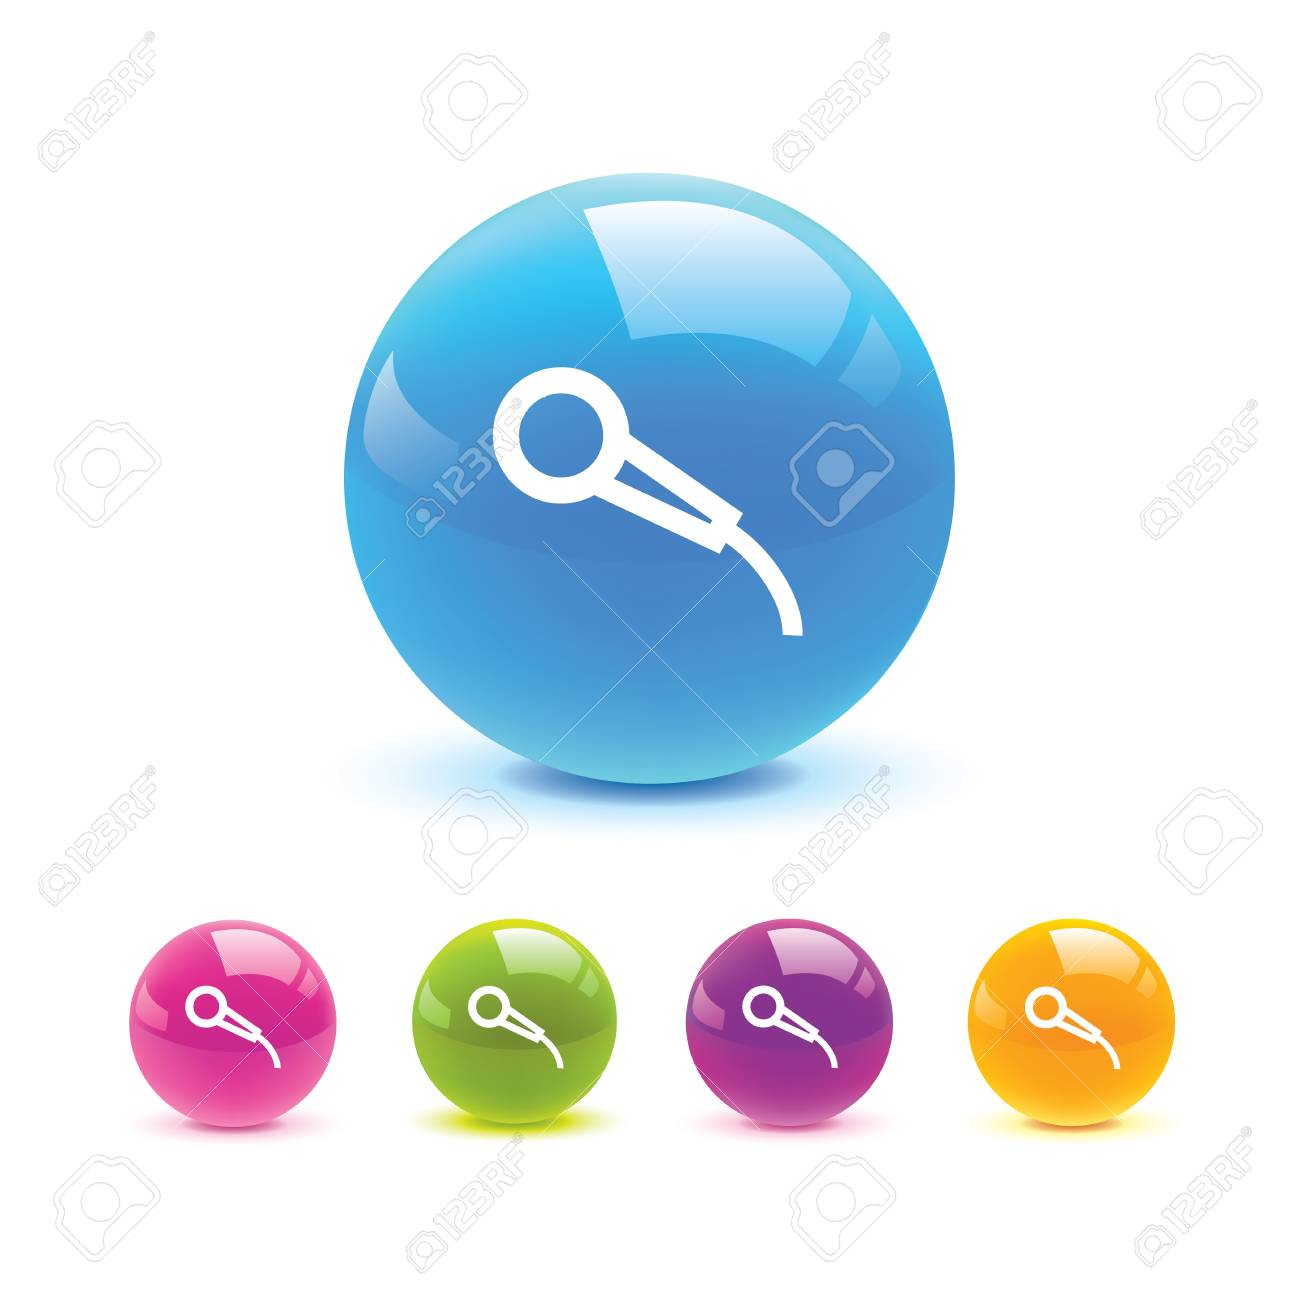 icon web set for use Stock Vector - 19734226